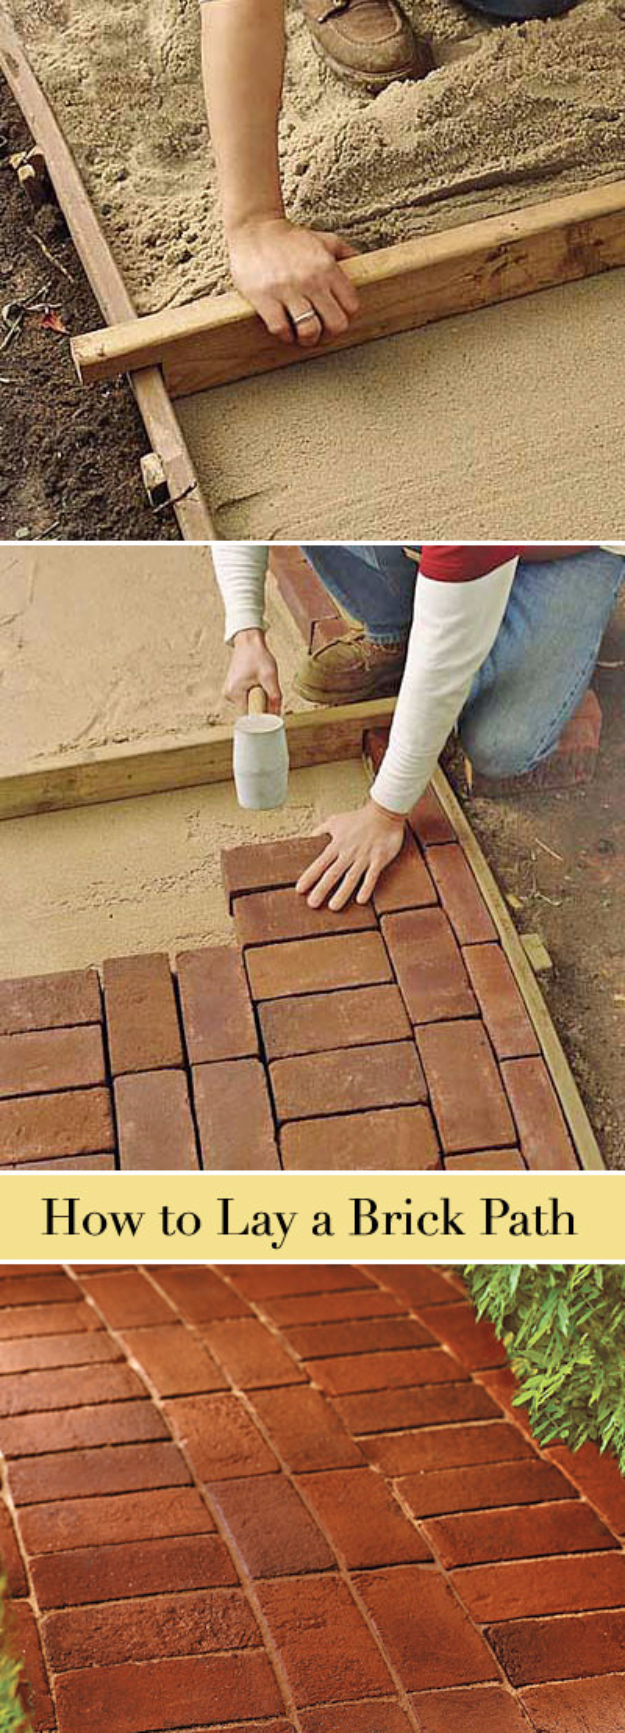 Creative Ways to Increase Curb Appeal on A Budget - Lay A Brick Path - Cheap and Easy Ideas for Upgrading Your Front Porch, Landscaping, Driveways, Garage Doors, Brick and Home Exteriors. Add Window Boxes, House Numbers